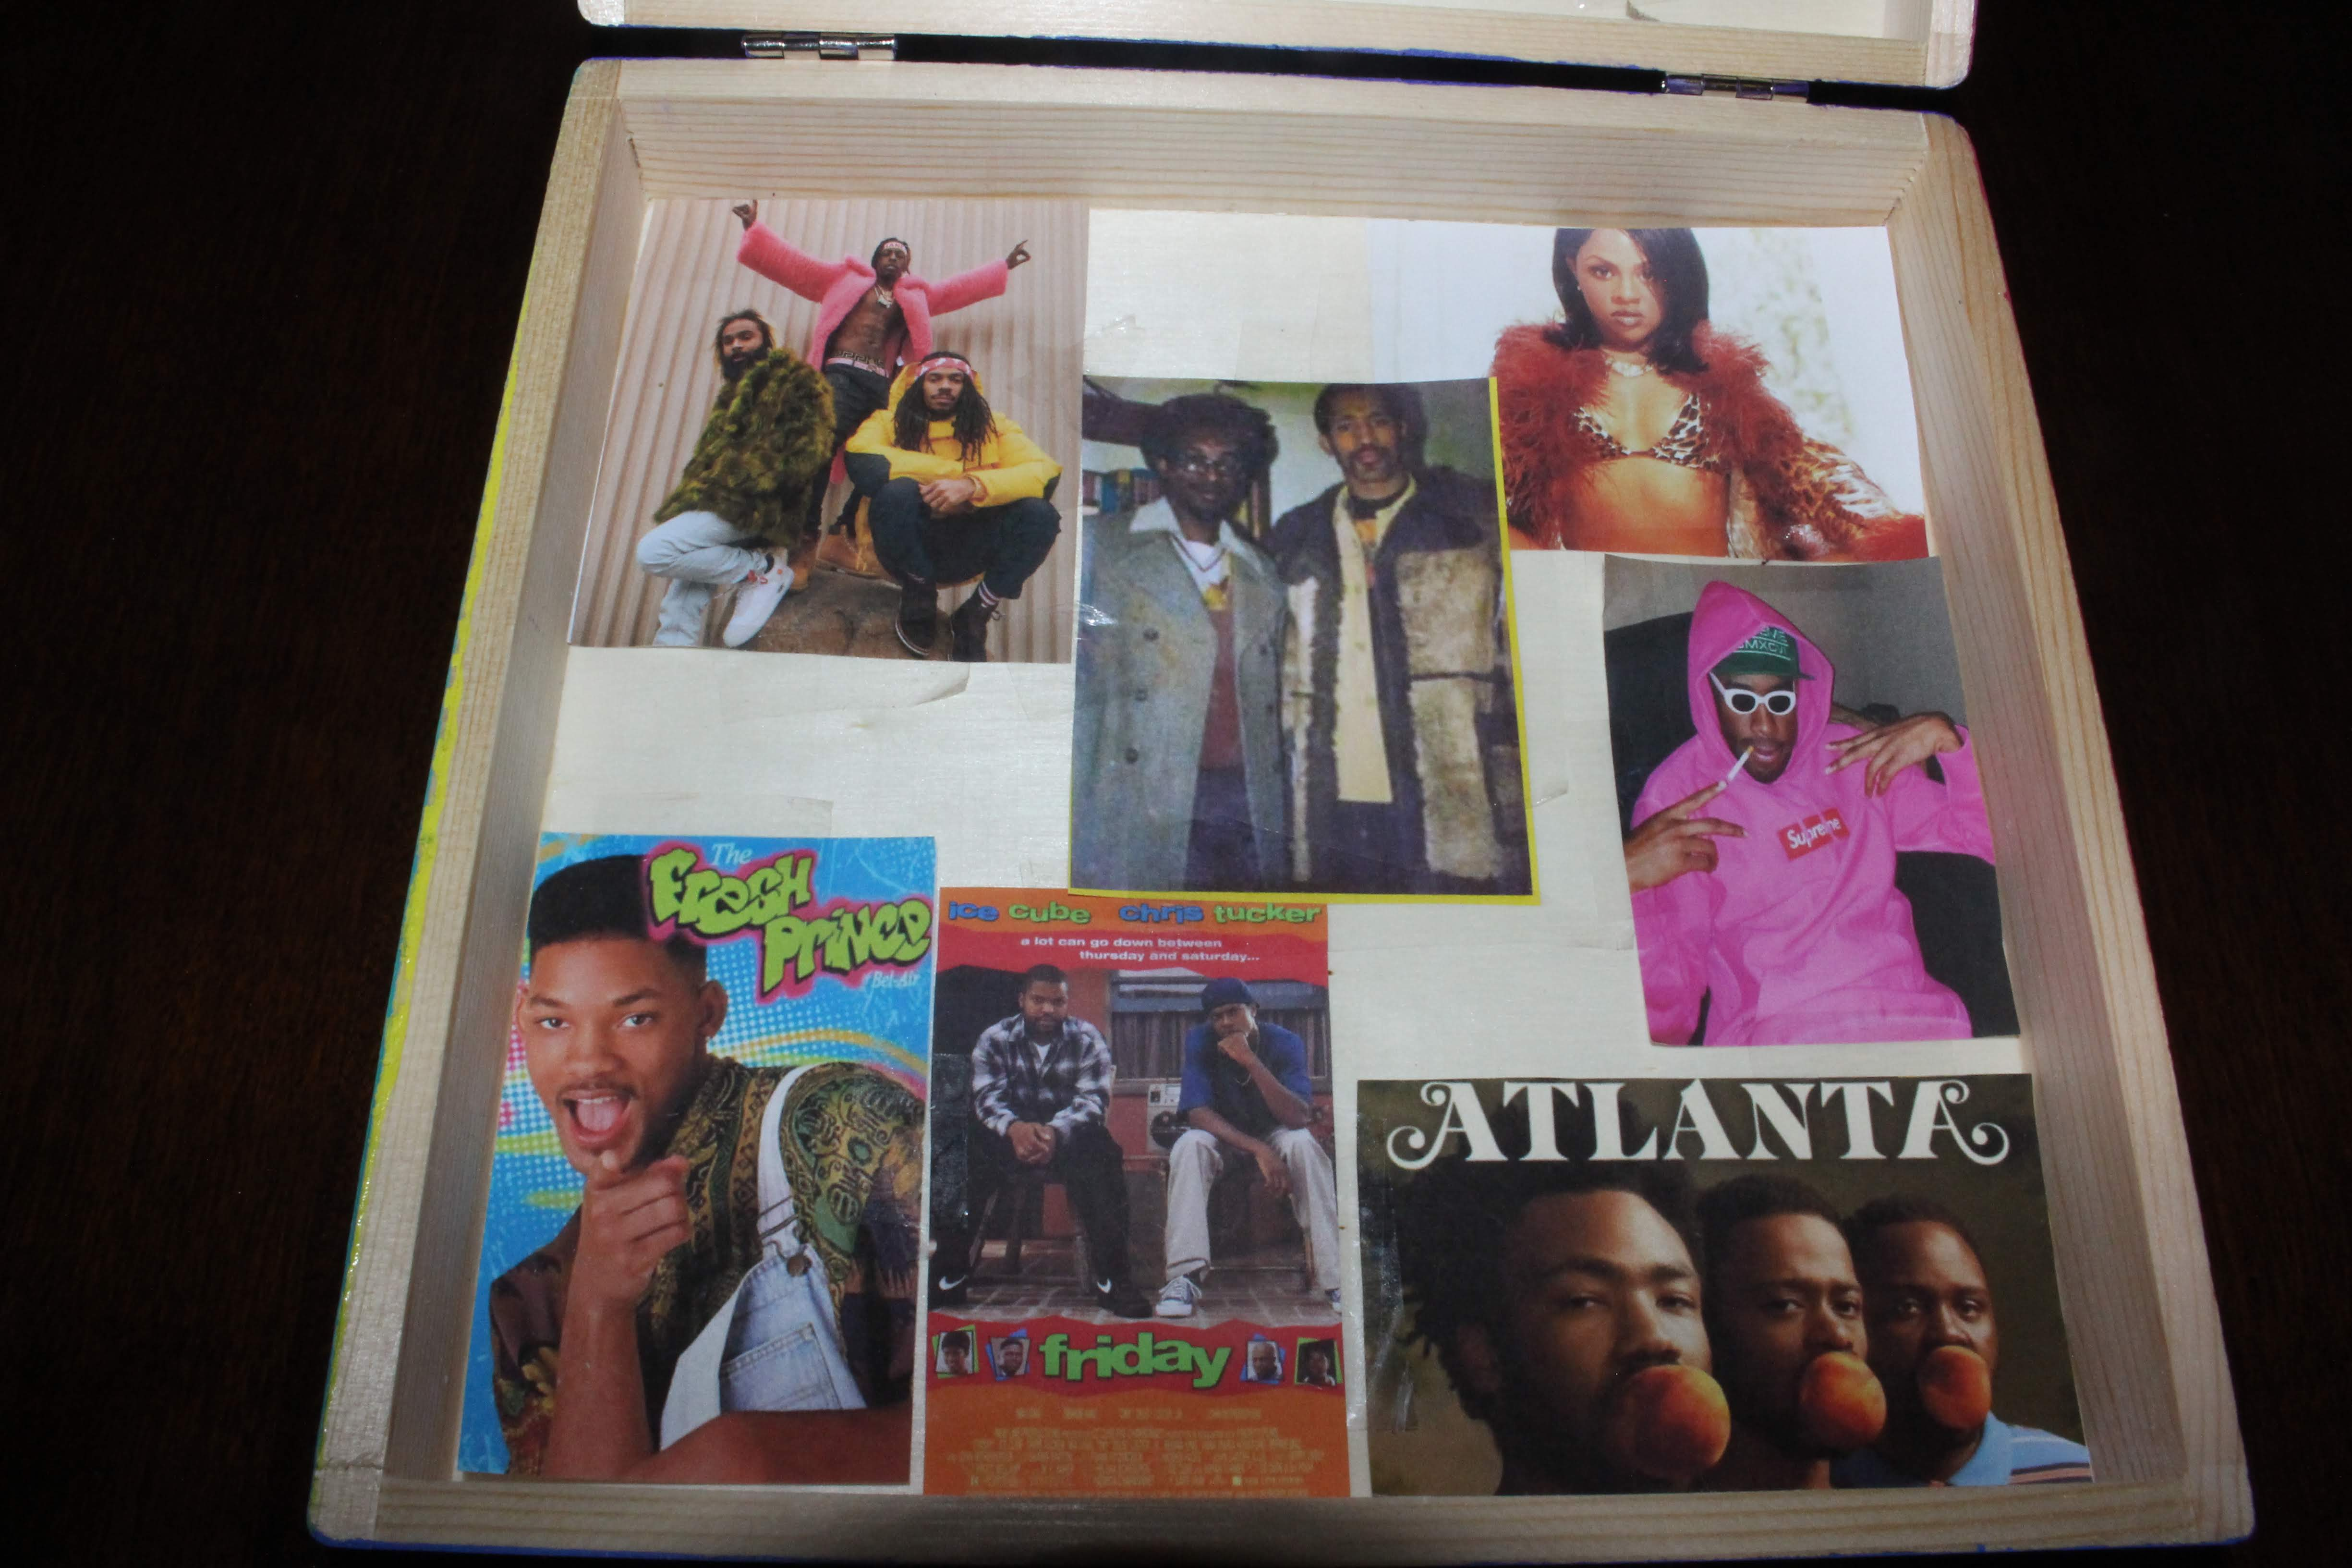 The bottom part of the inside of the box. It's a brief summary of some of my favorite musicians, tv shows, and movies that come from hip-hop culture. In the center is an image of the 'founders of hip-hop'.